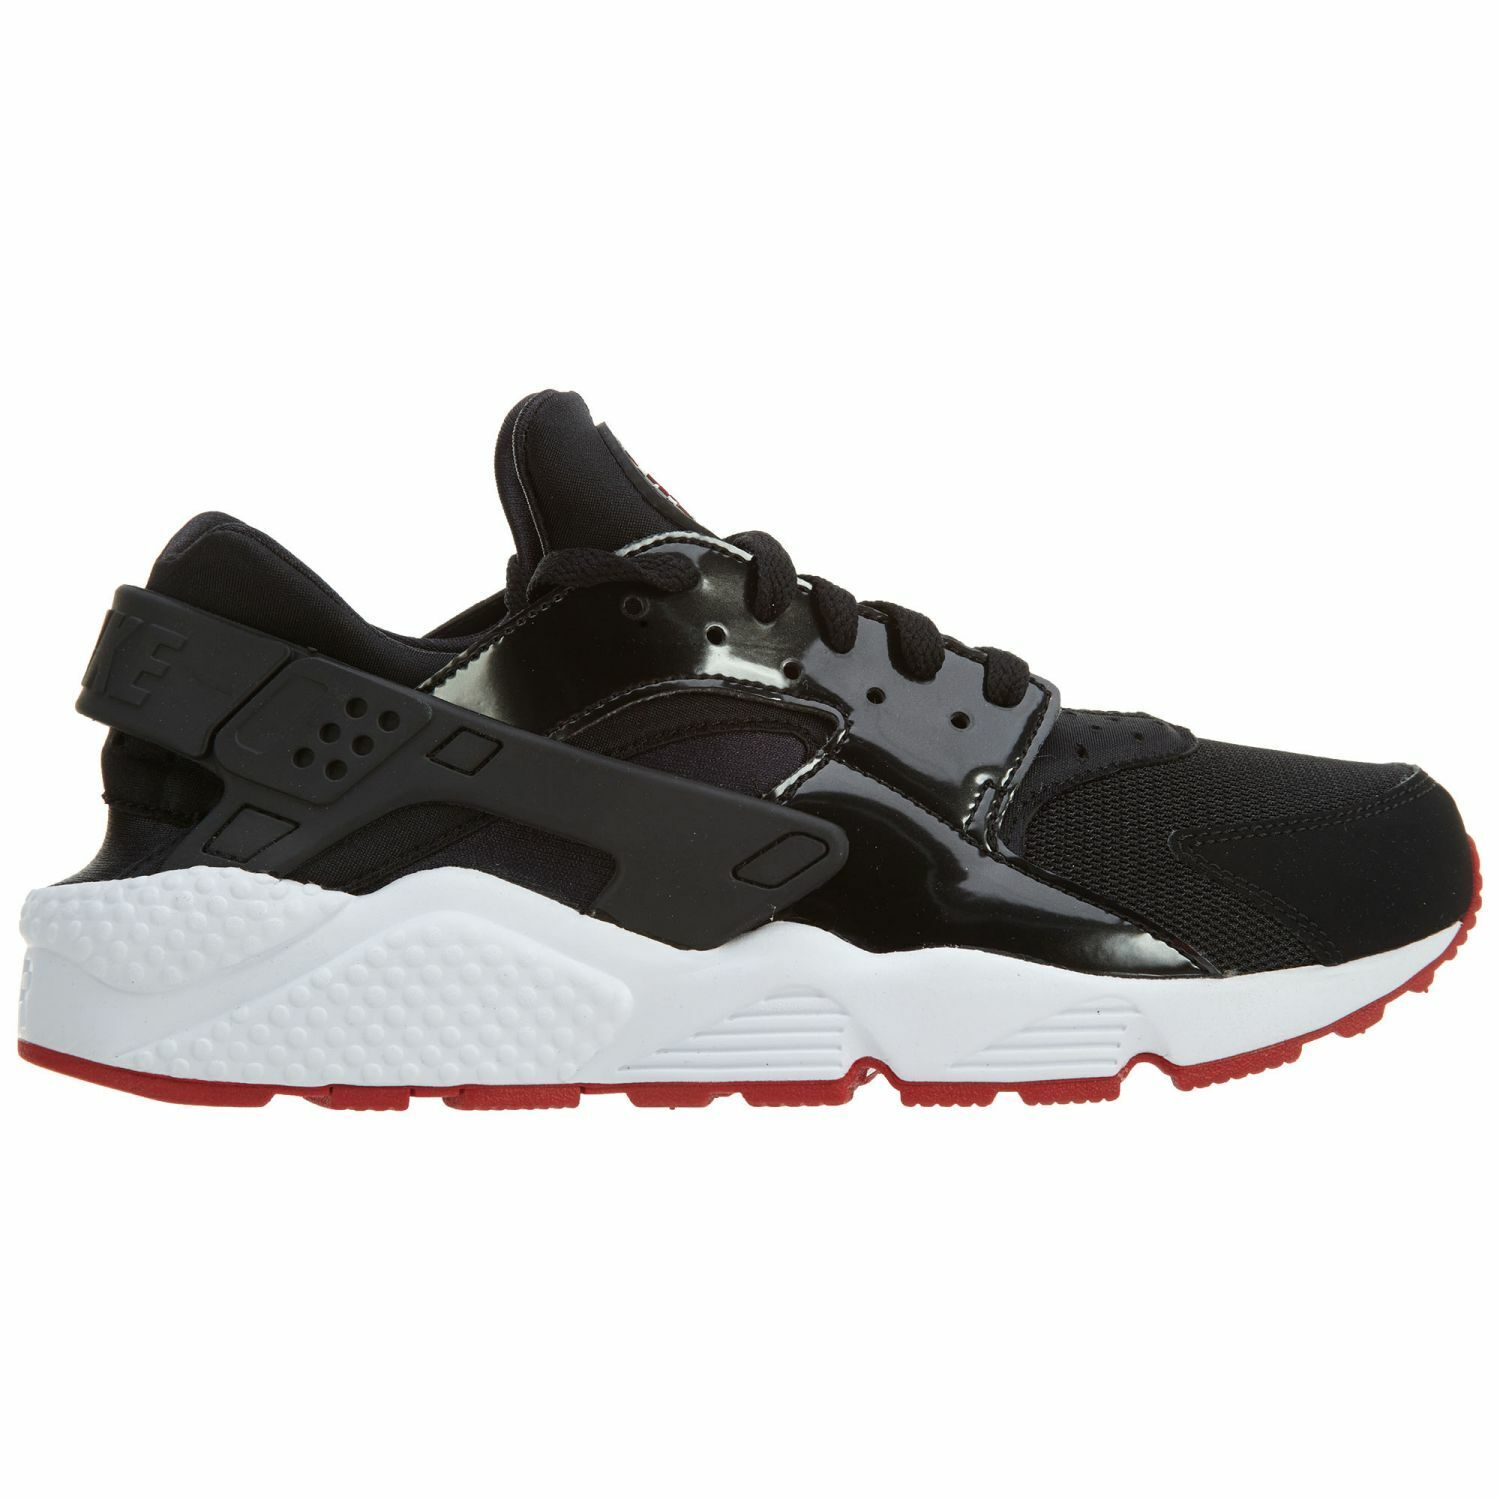 Nike Air Huarache Mens 318429-032 Black Red Patent Leather Running shoes Size 10